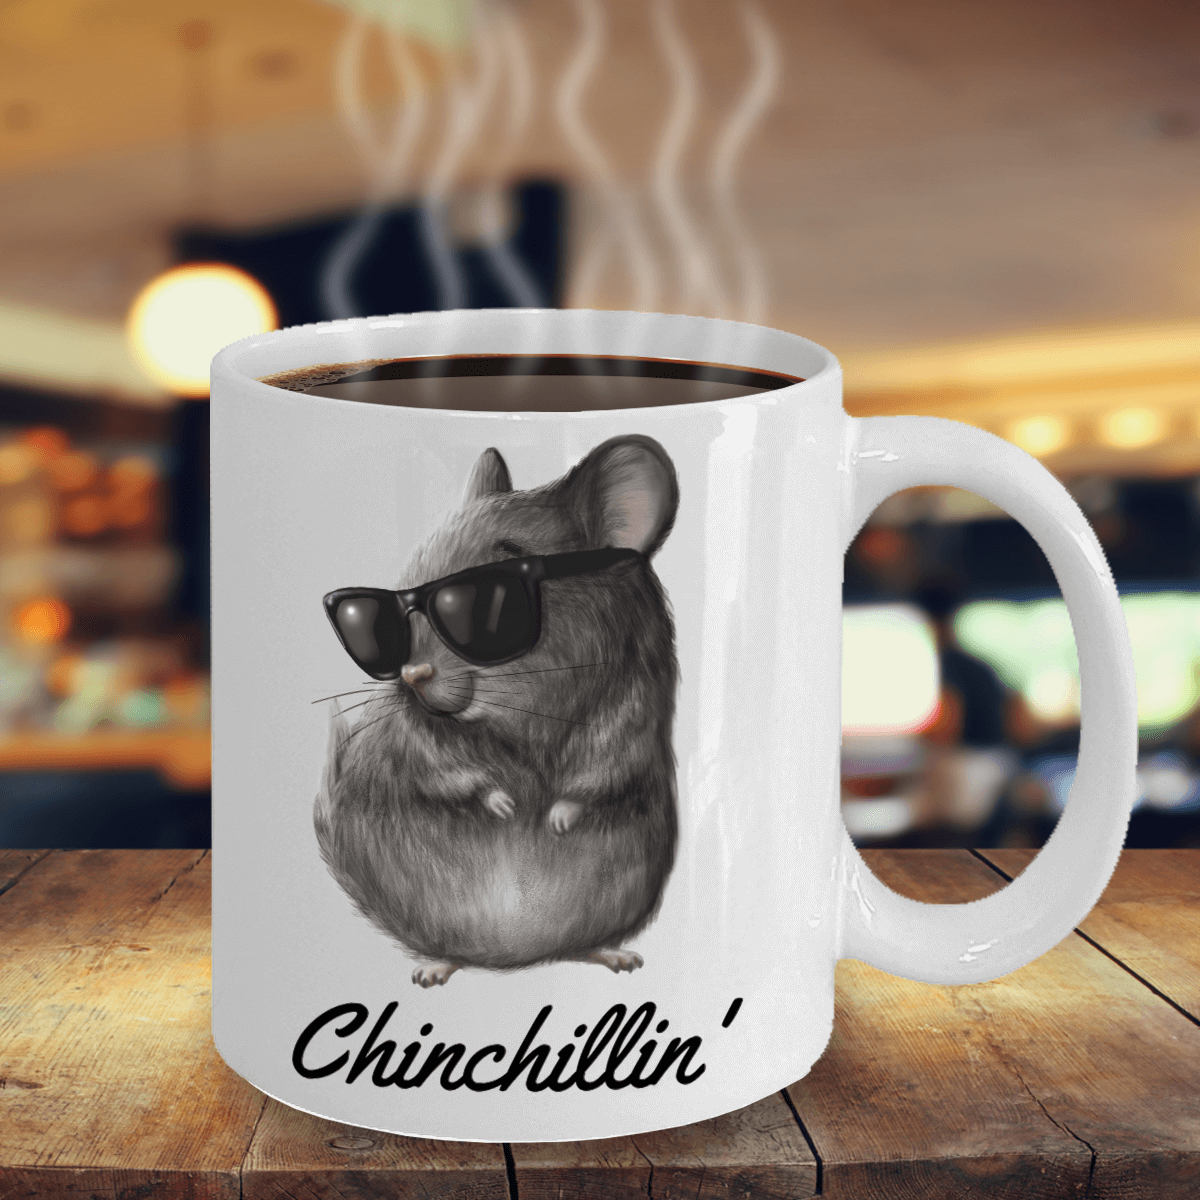 Chinchillin' White Ceramic Mug